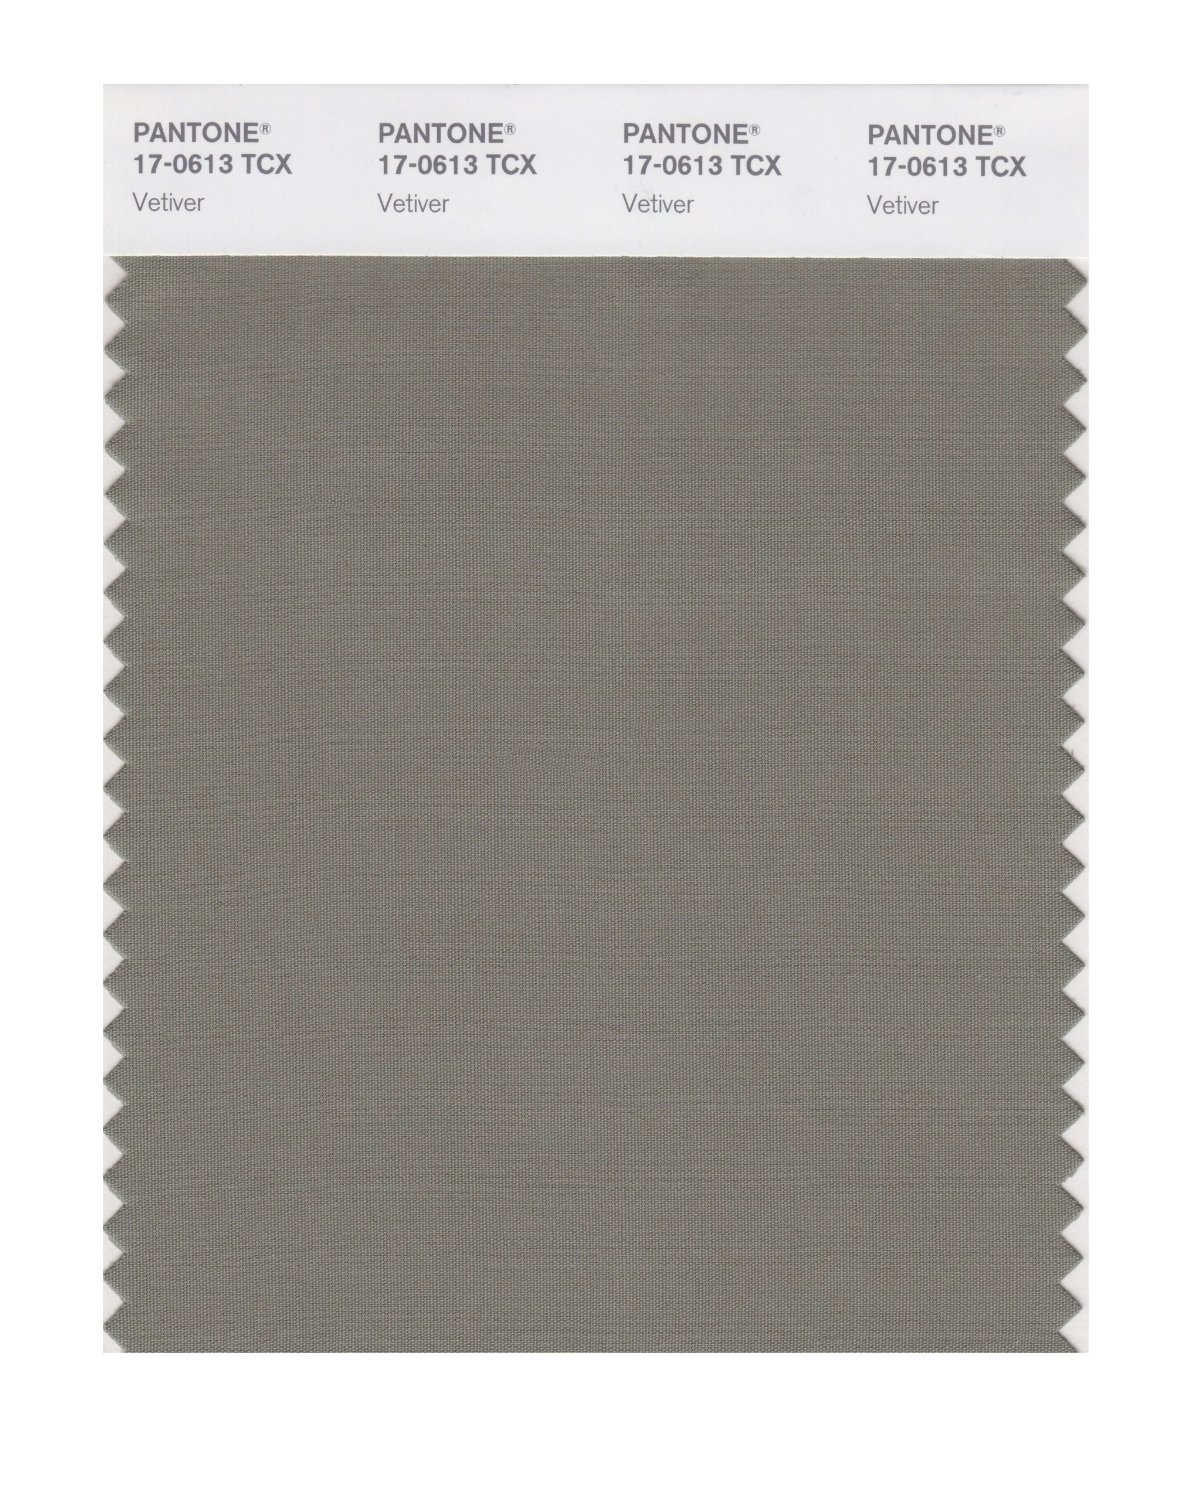 Pantone Smart Swatch 17-0613 Vetiver